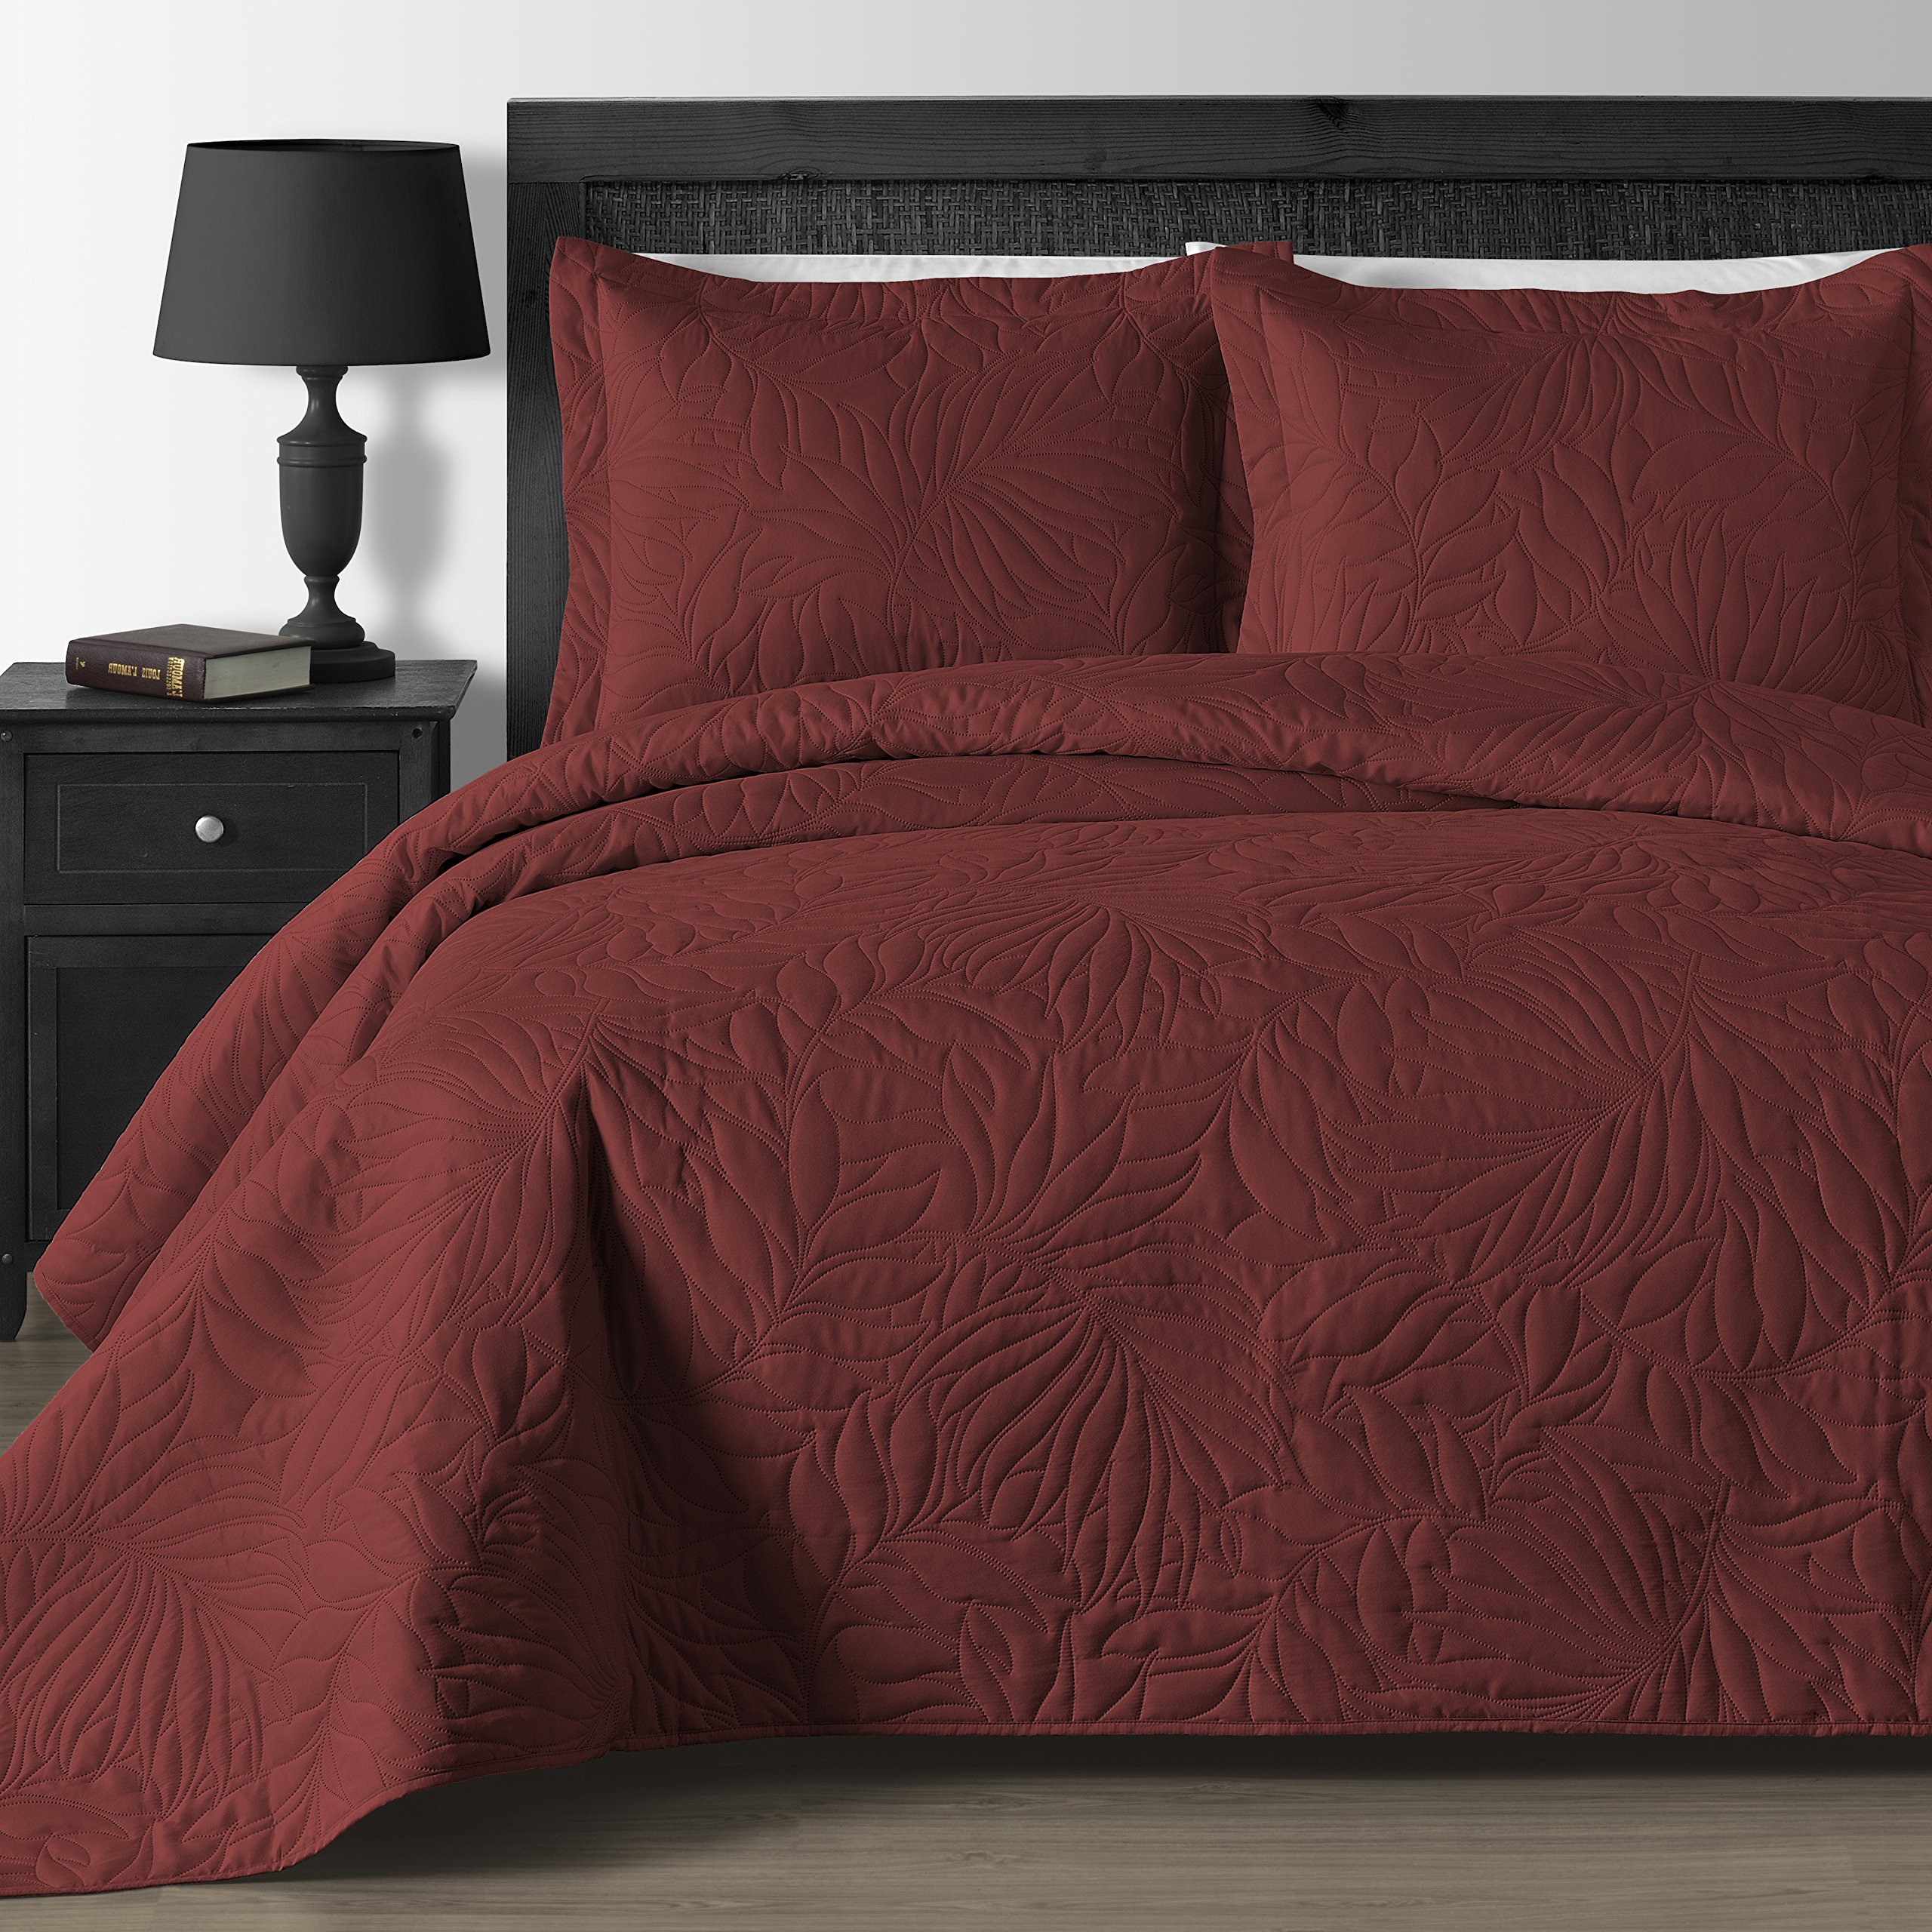 Comfy Bedding Extra Lightweight and Oversized Thermal Pressing Leafage 3-piece Coverlet Set (King/Cal King, Brick)